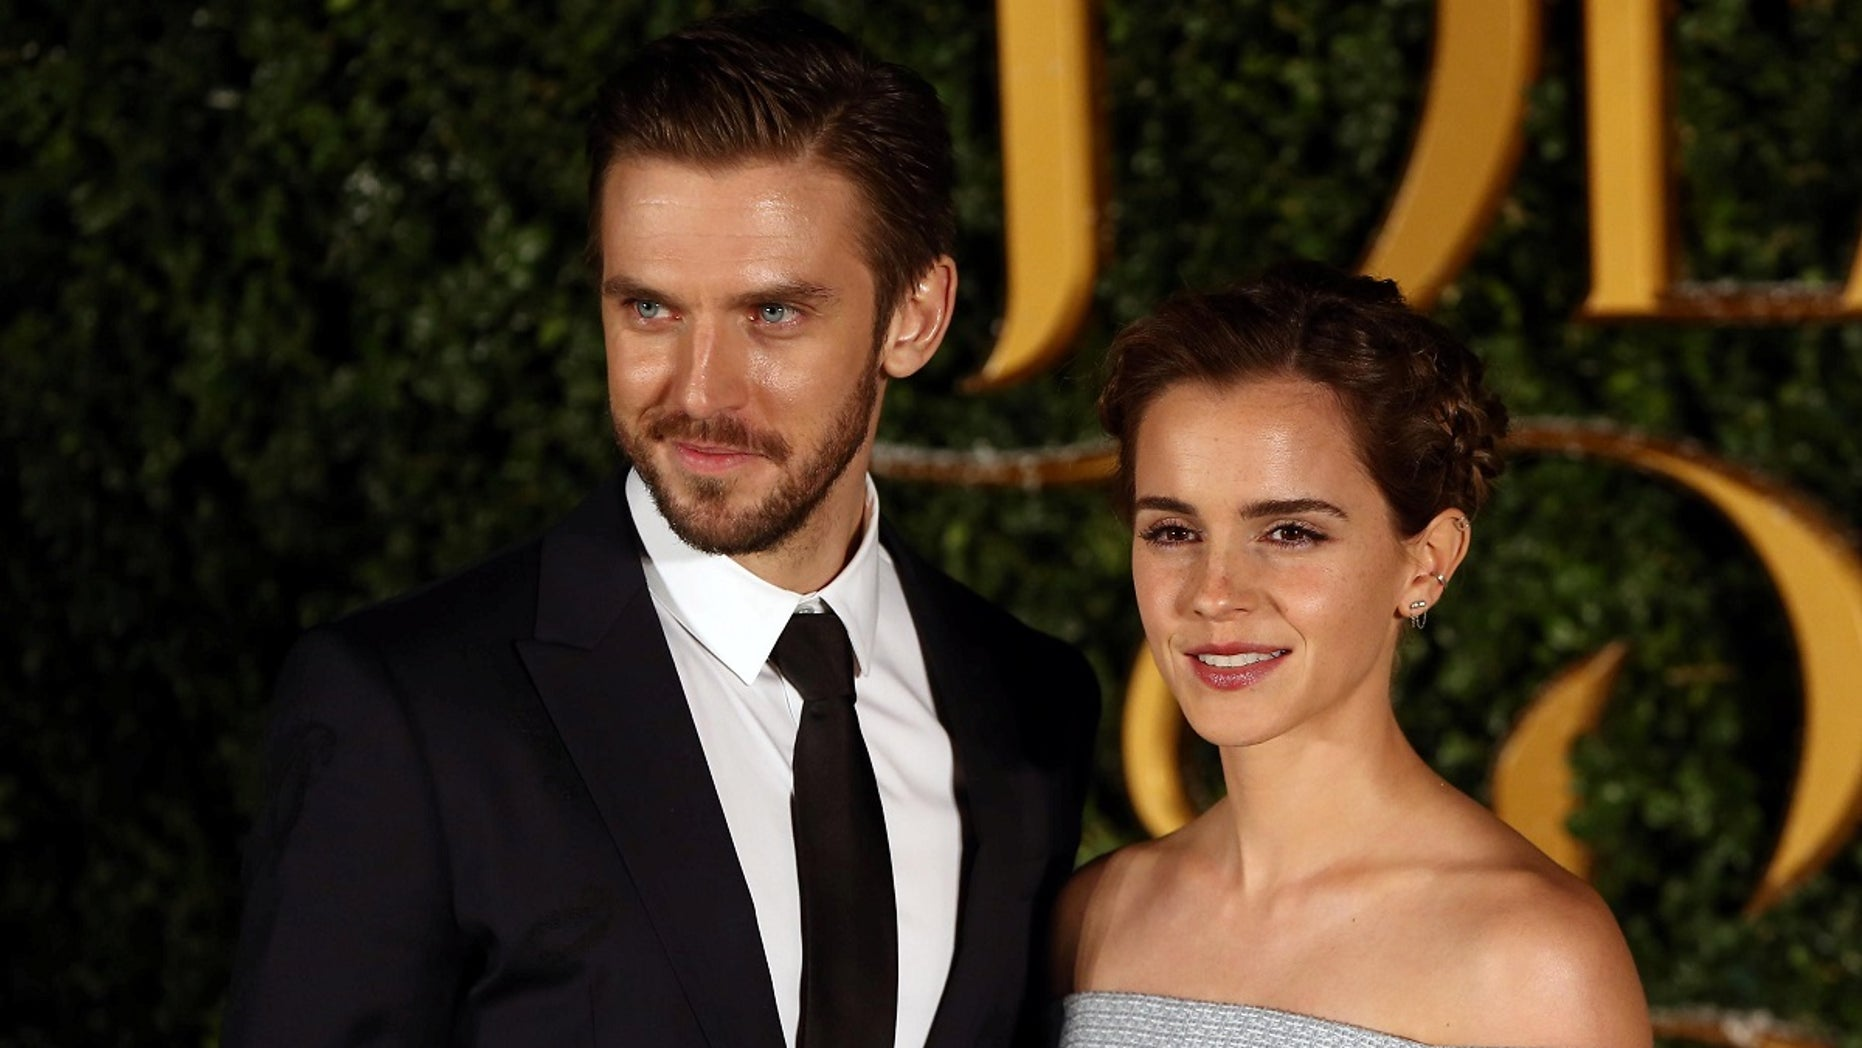 """Dan Stevens and Emma Watson pose for photographers at a media event for the live action film """"Beauty and the Beast"""" in London, Britain."""